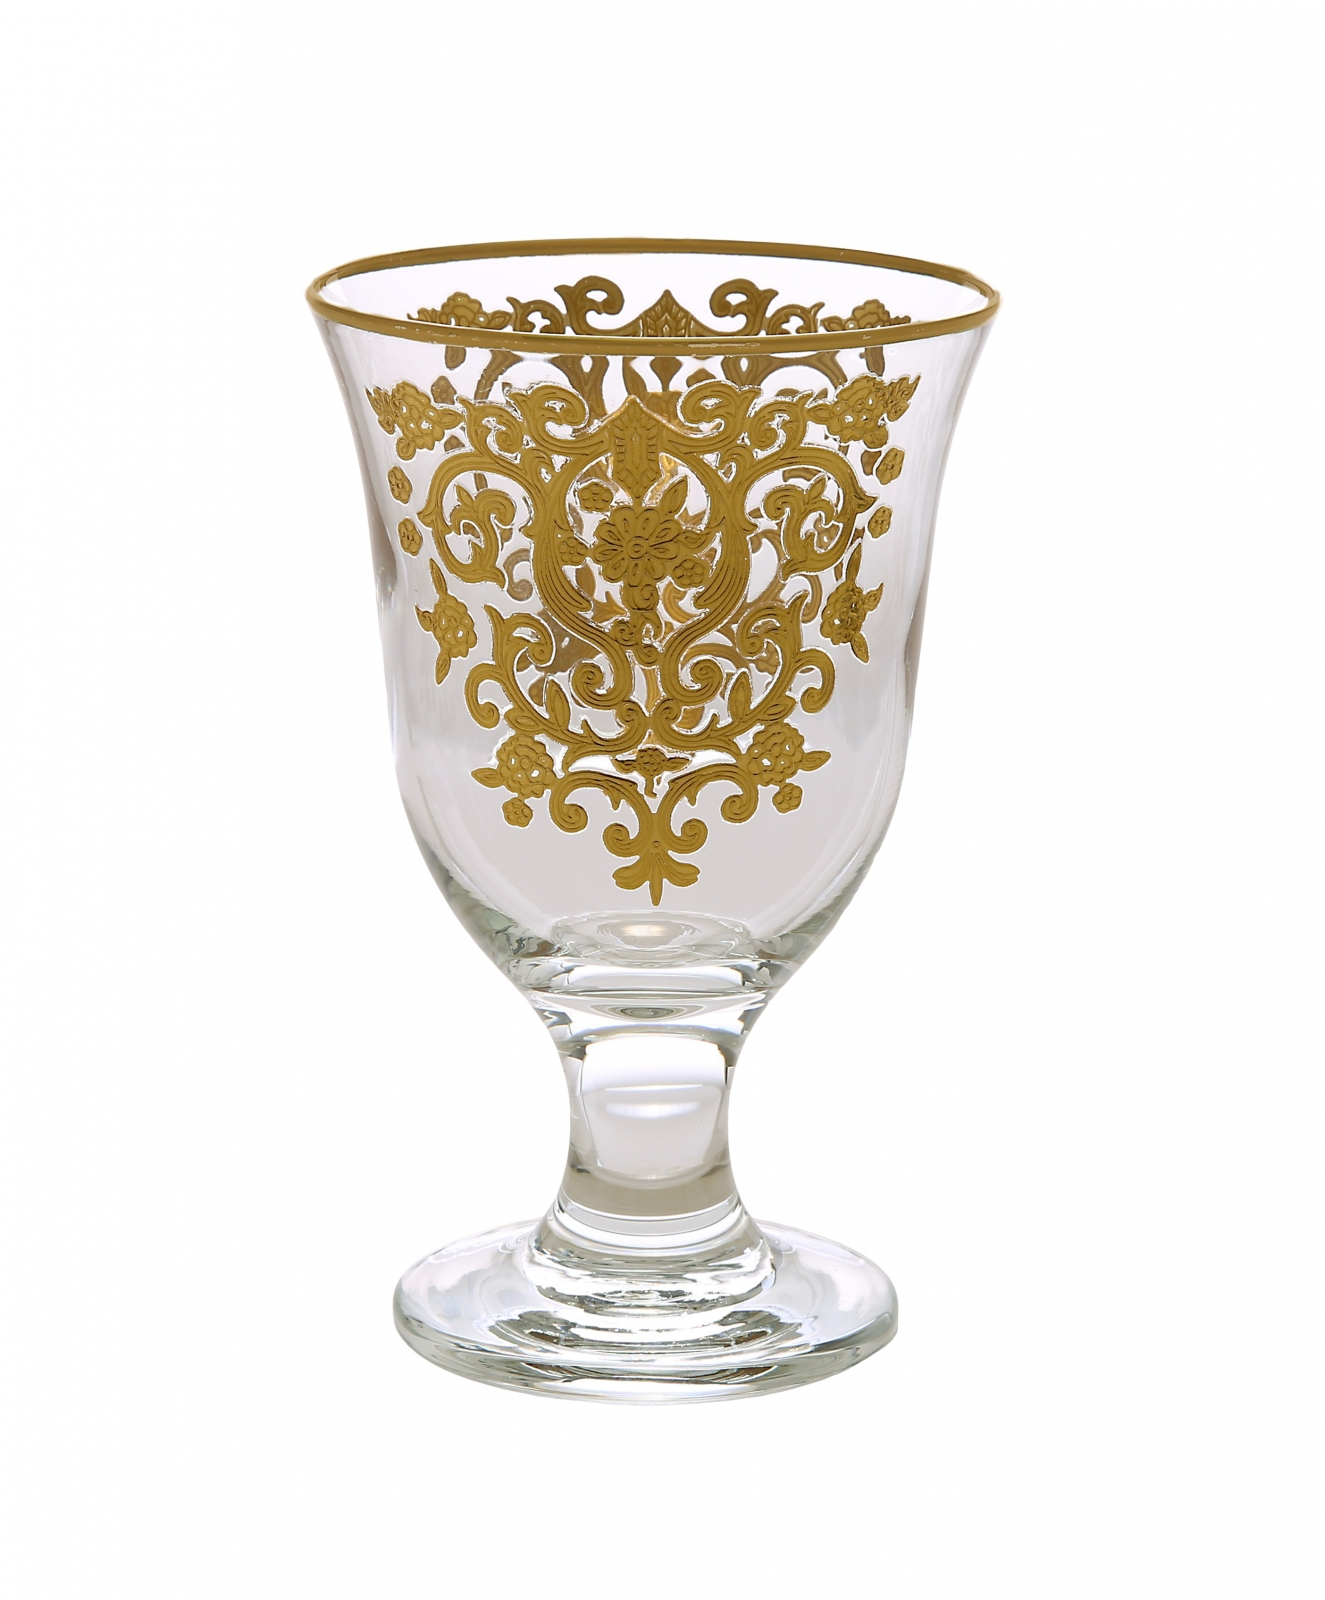 Set of 6 Short stem Glasses with Rich Gold Artwork